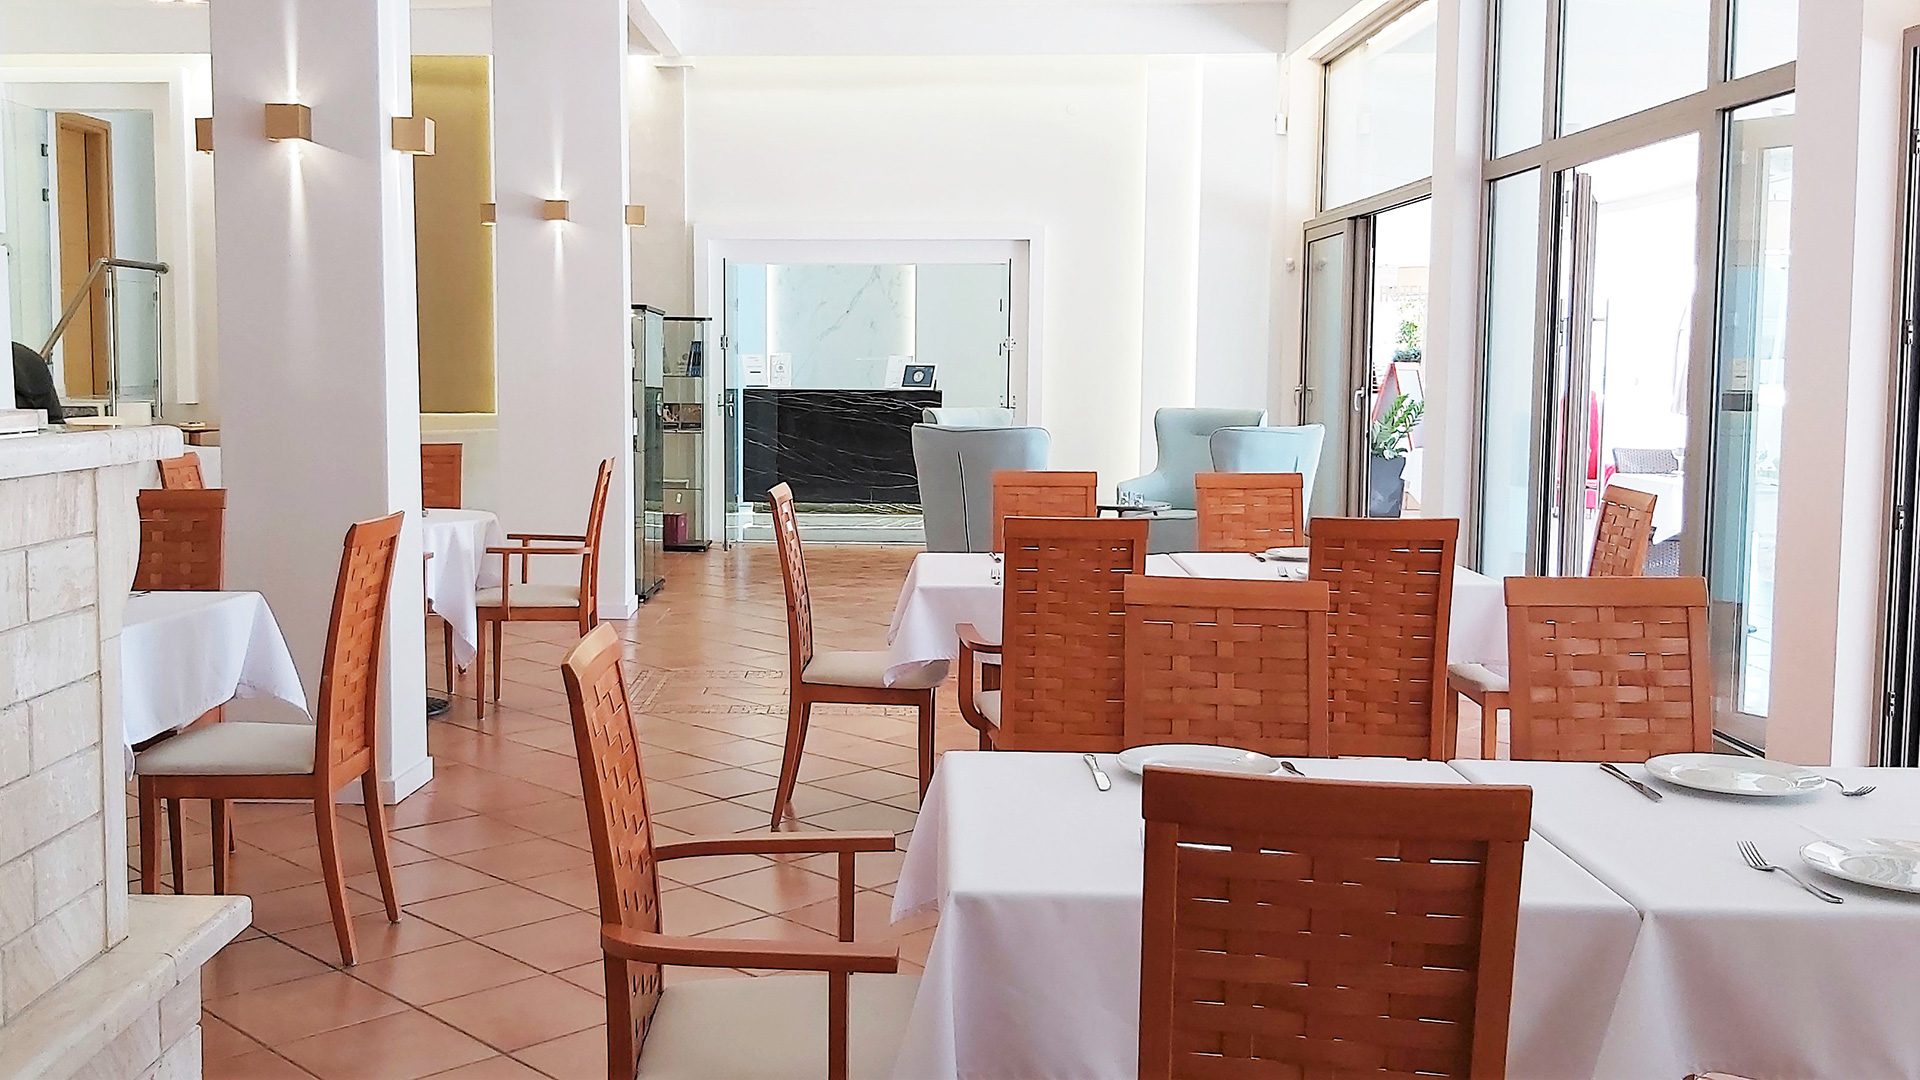 View of the interior restaurant in Akrogiali hotel Halkidiki